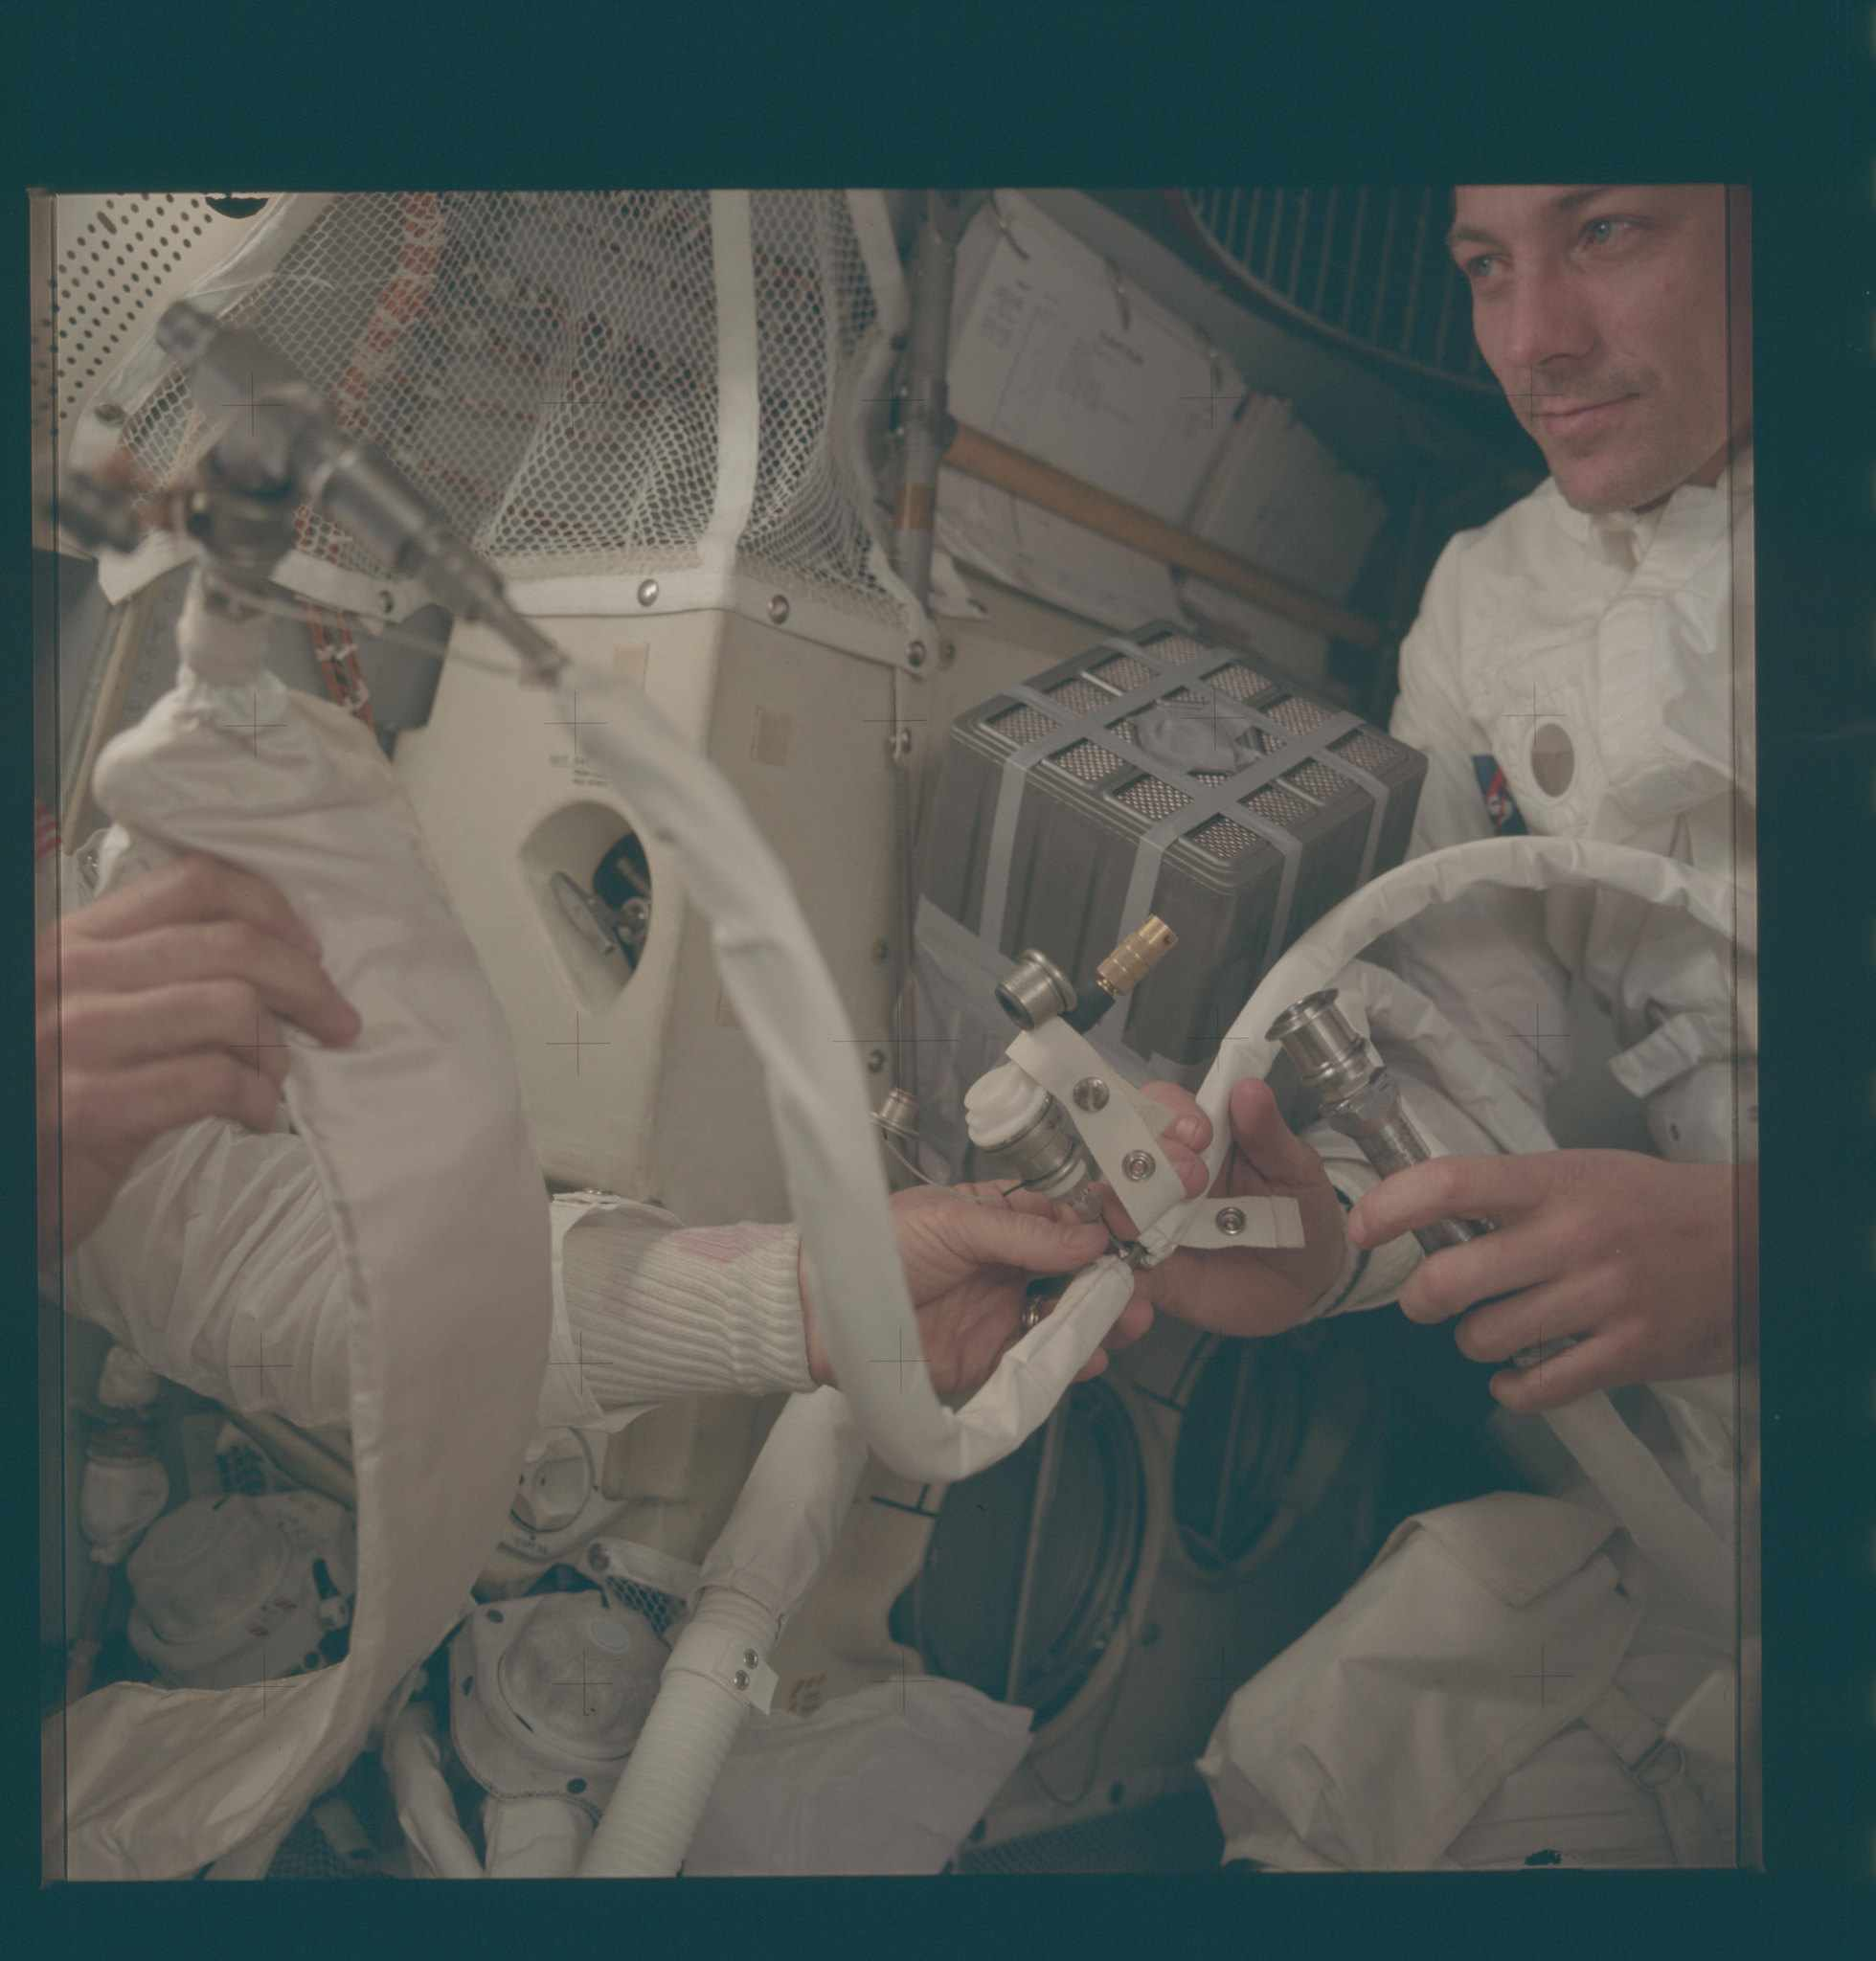 AS13-62-9004 Apollo 13 Hasselblad image from film magazine 62/JJ - Onboard